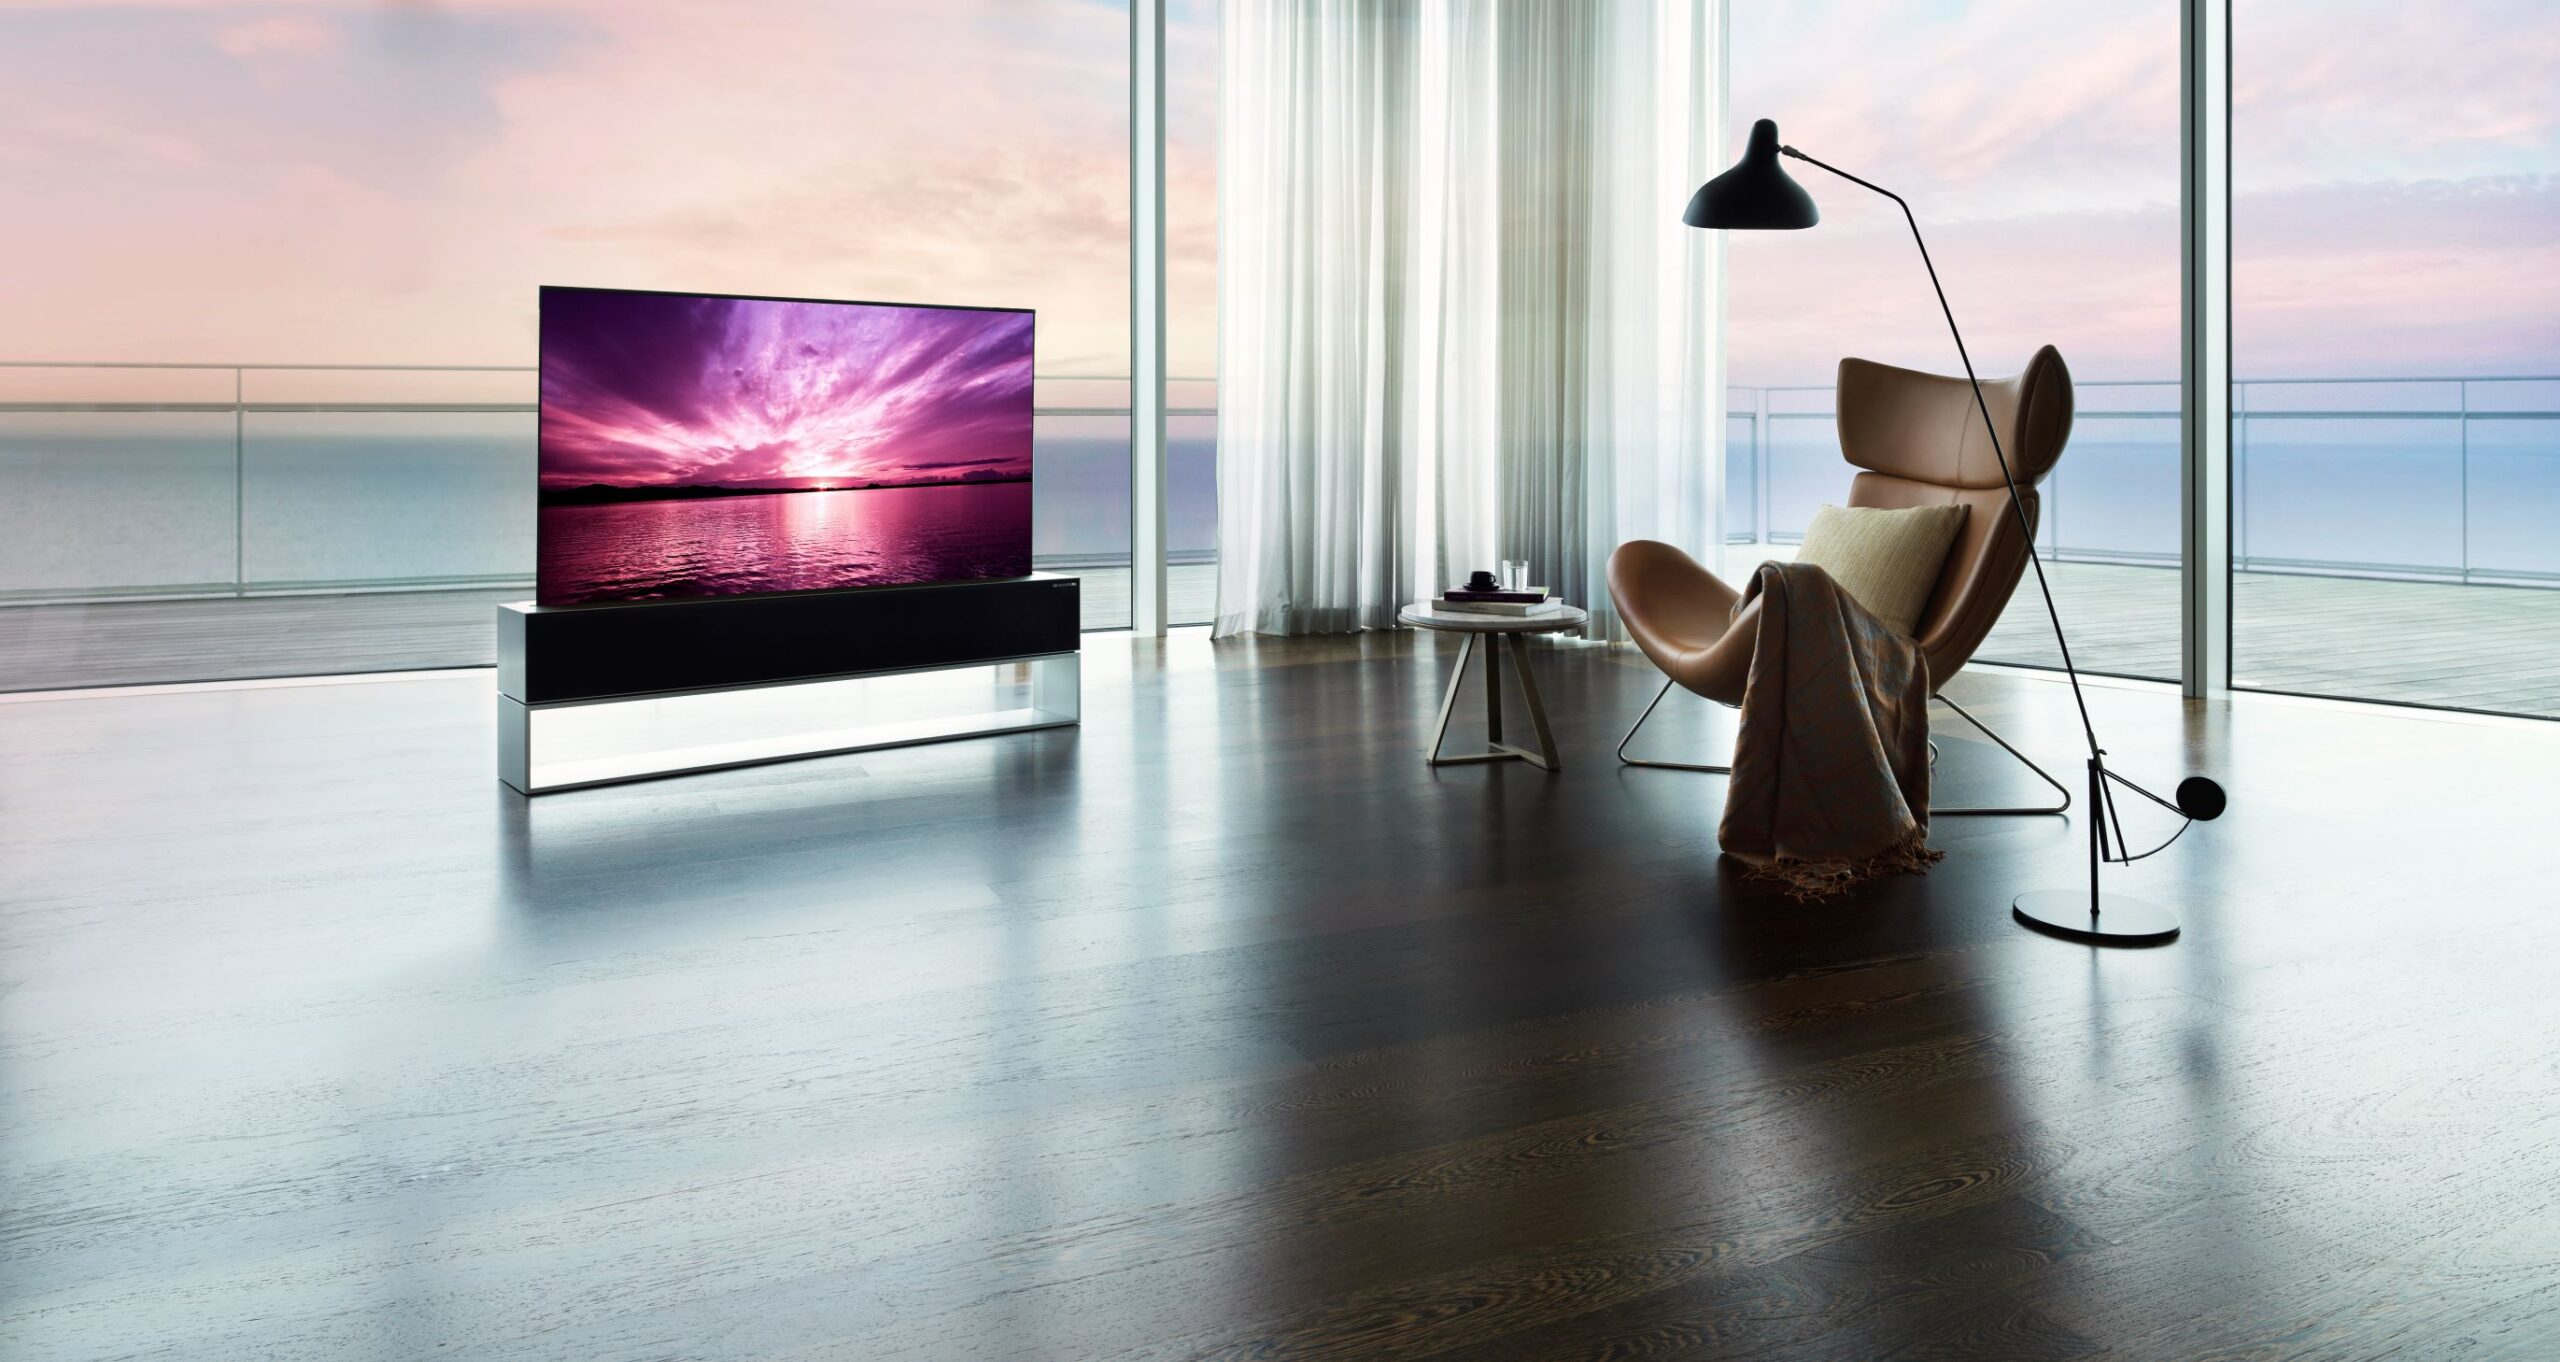 LG rollable TV 2